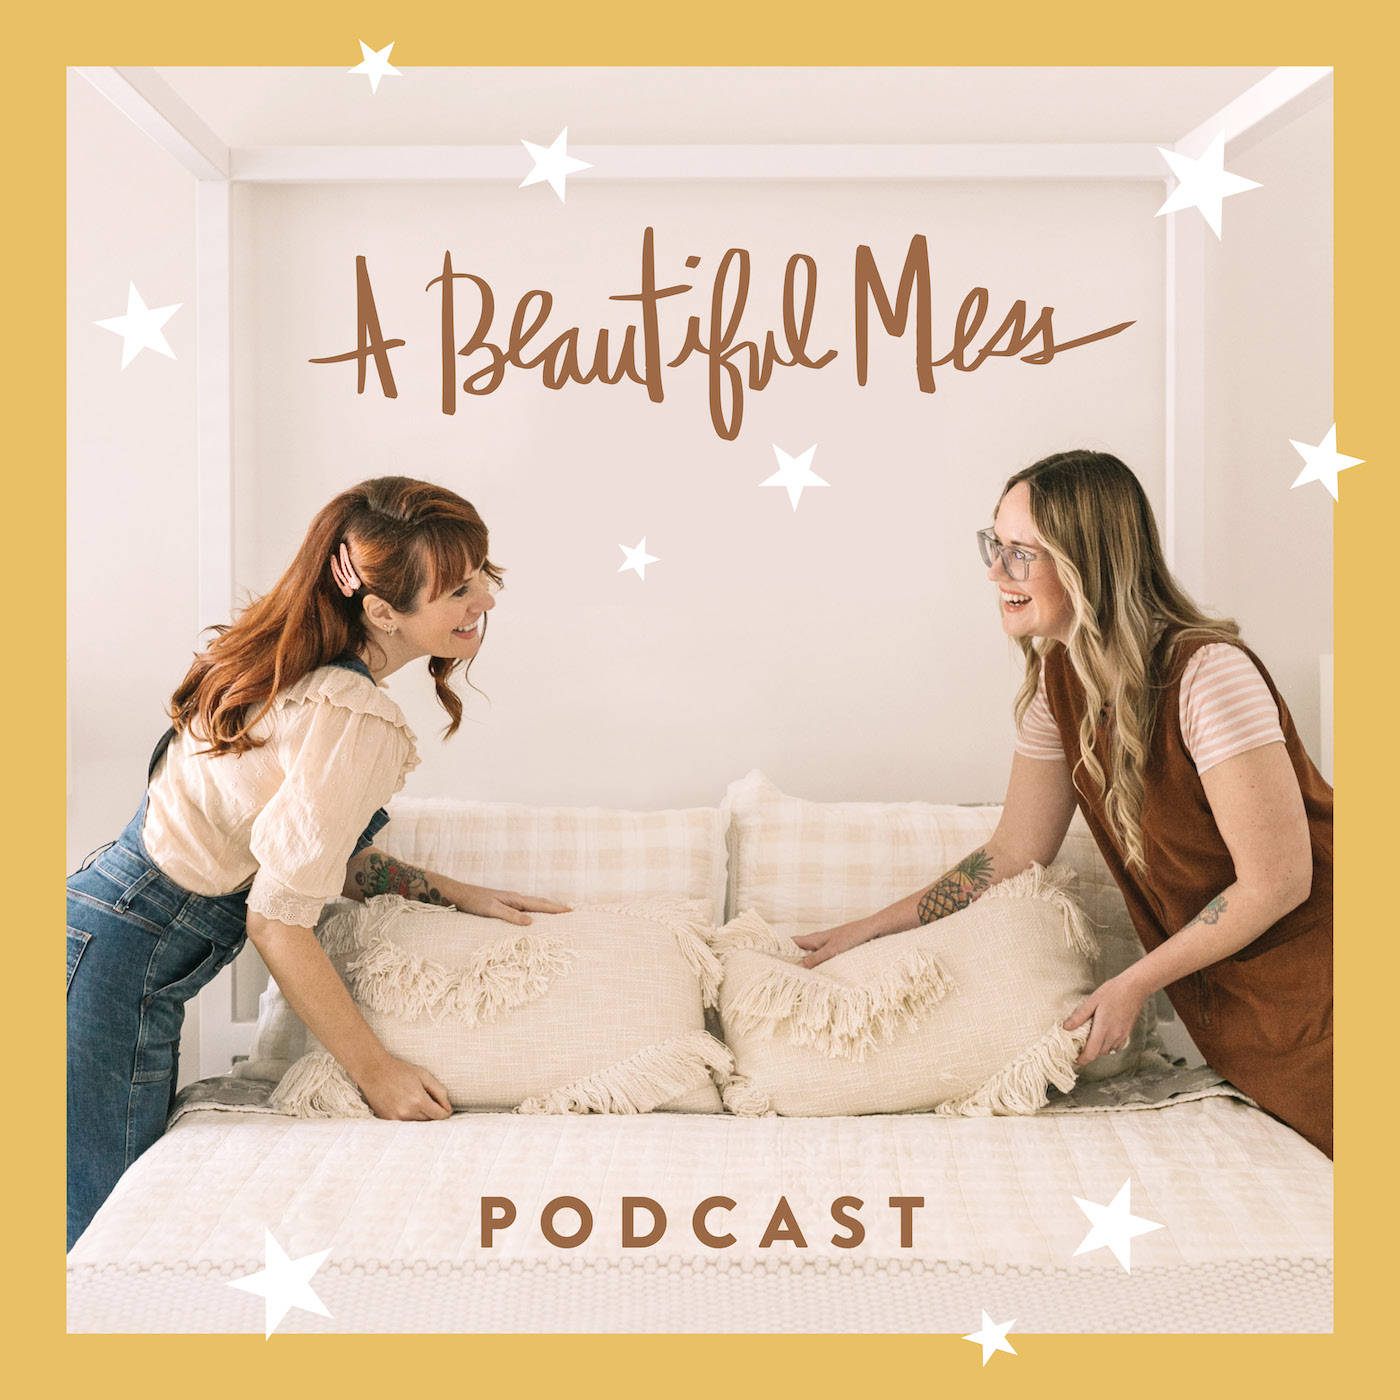 A Beautiful Mess Podcast